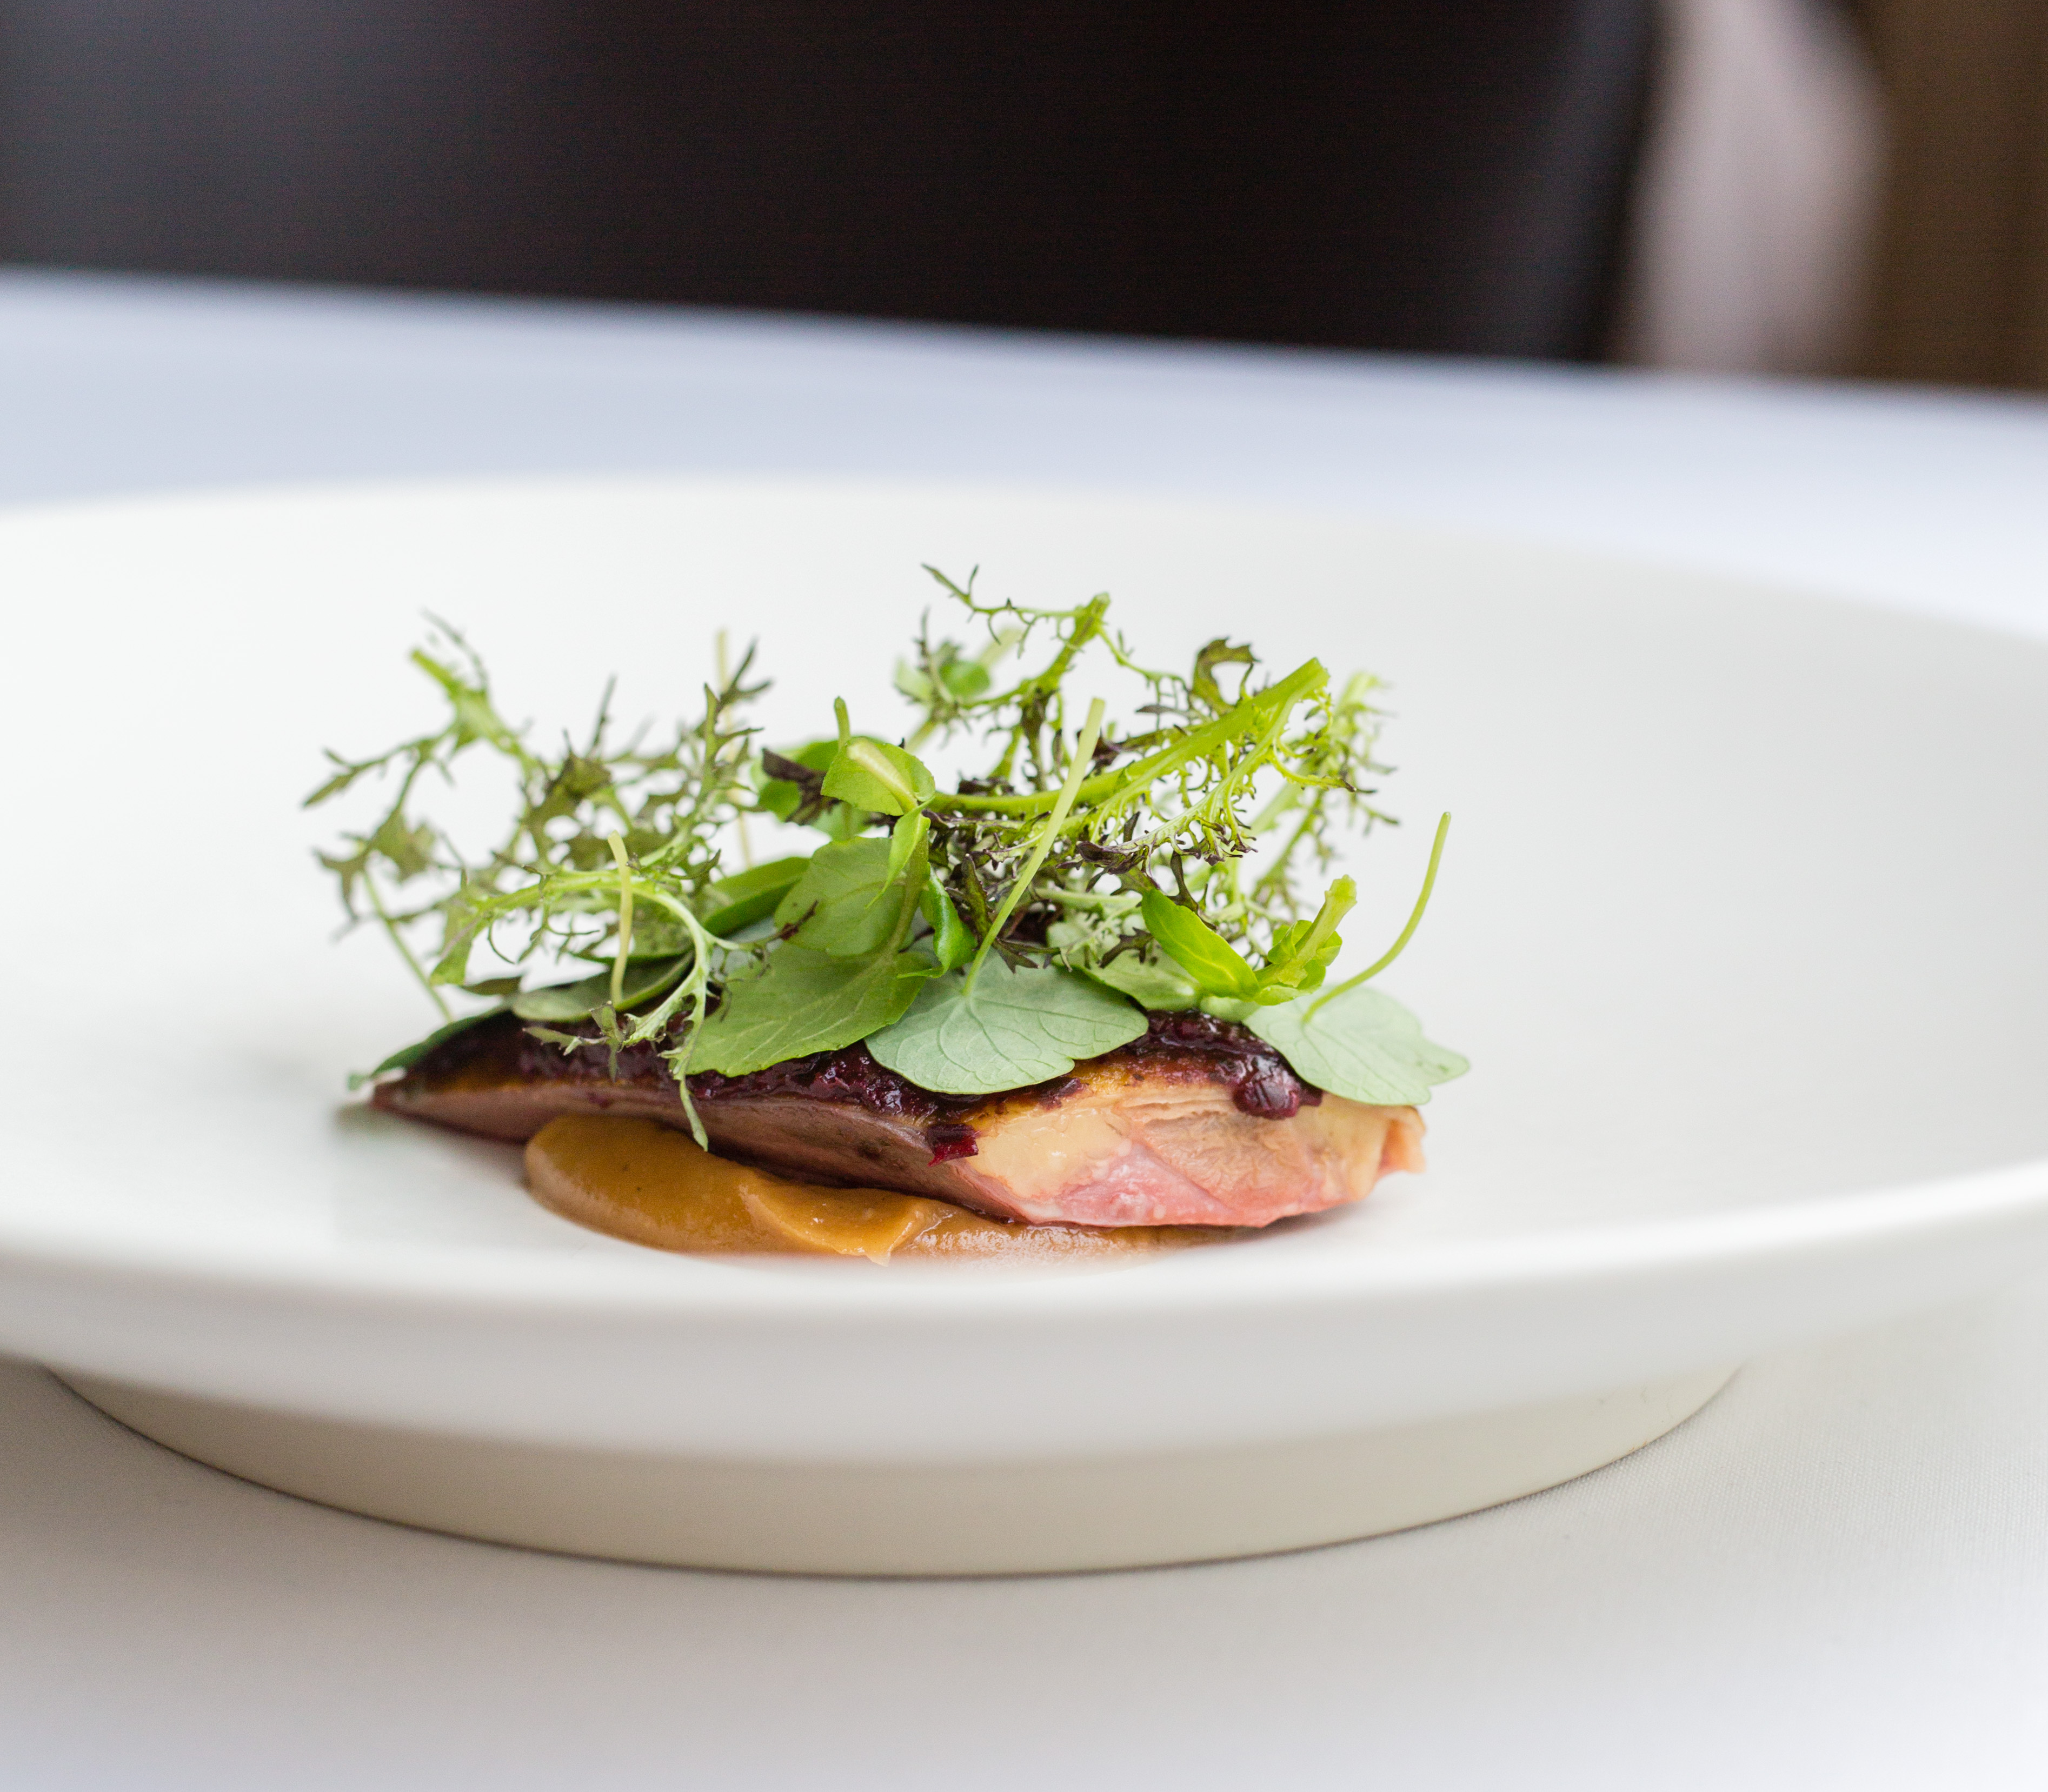 A piece of duck topped with greens at Castagna